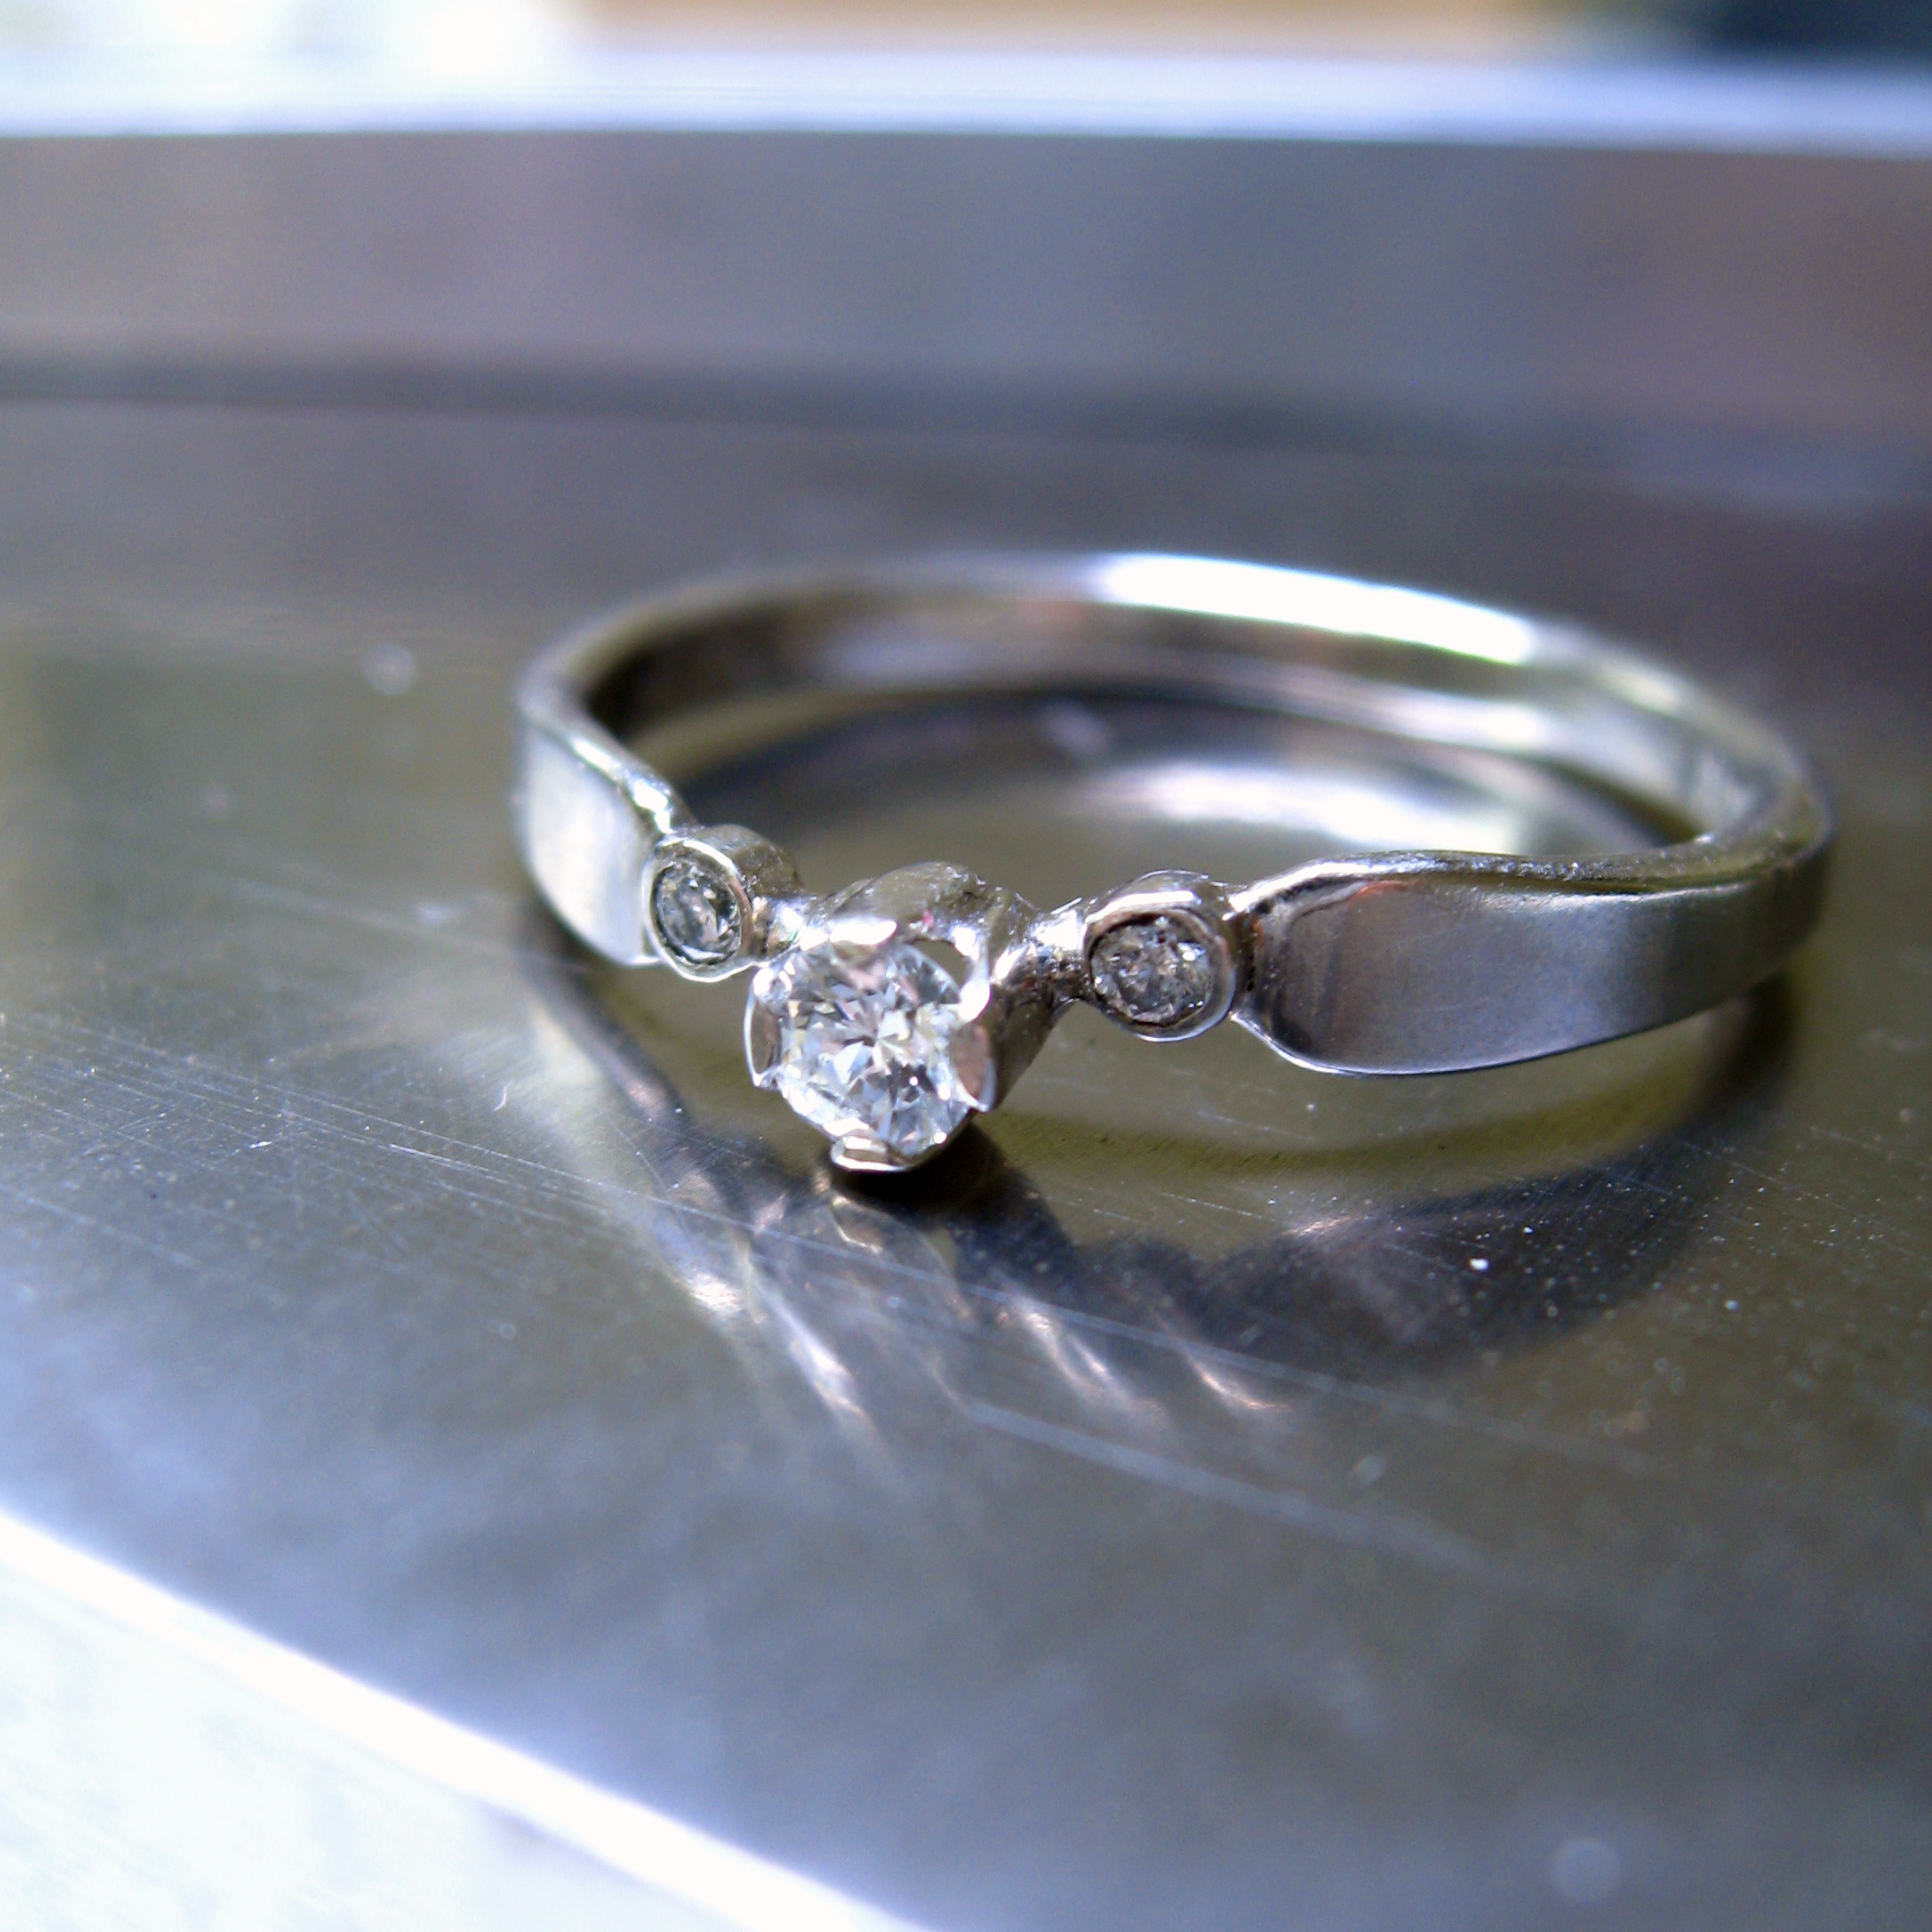 recycled diamond ring - engagement ring in recycled palldium - made in San Francisco - Sharon Z Jewelry - ethical jewelry.jpg